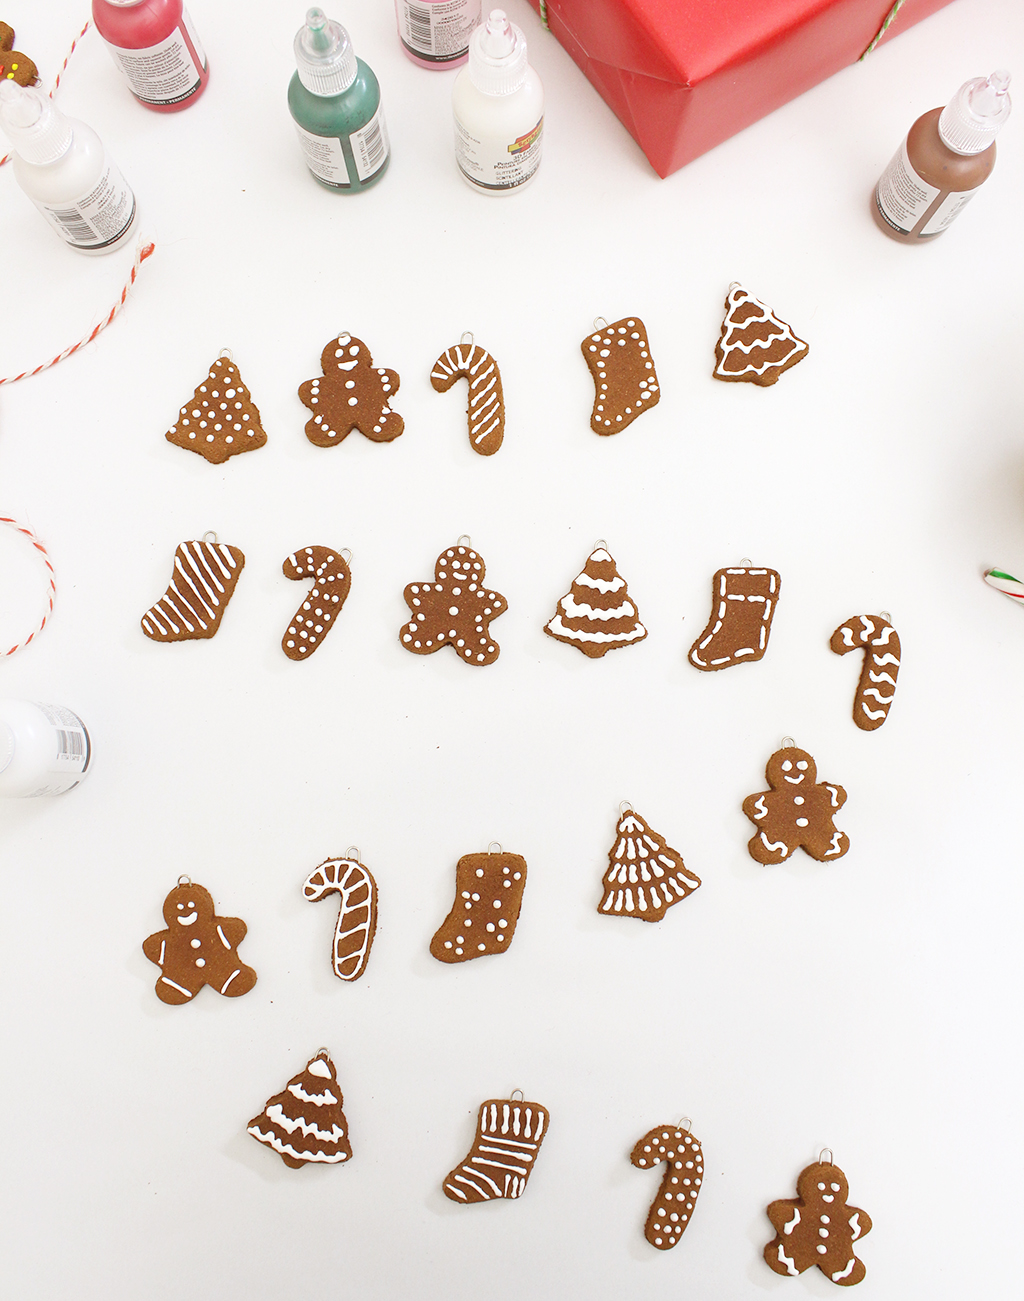 Mini Gingerbread Cookie Garland Fully Decorated